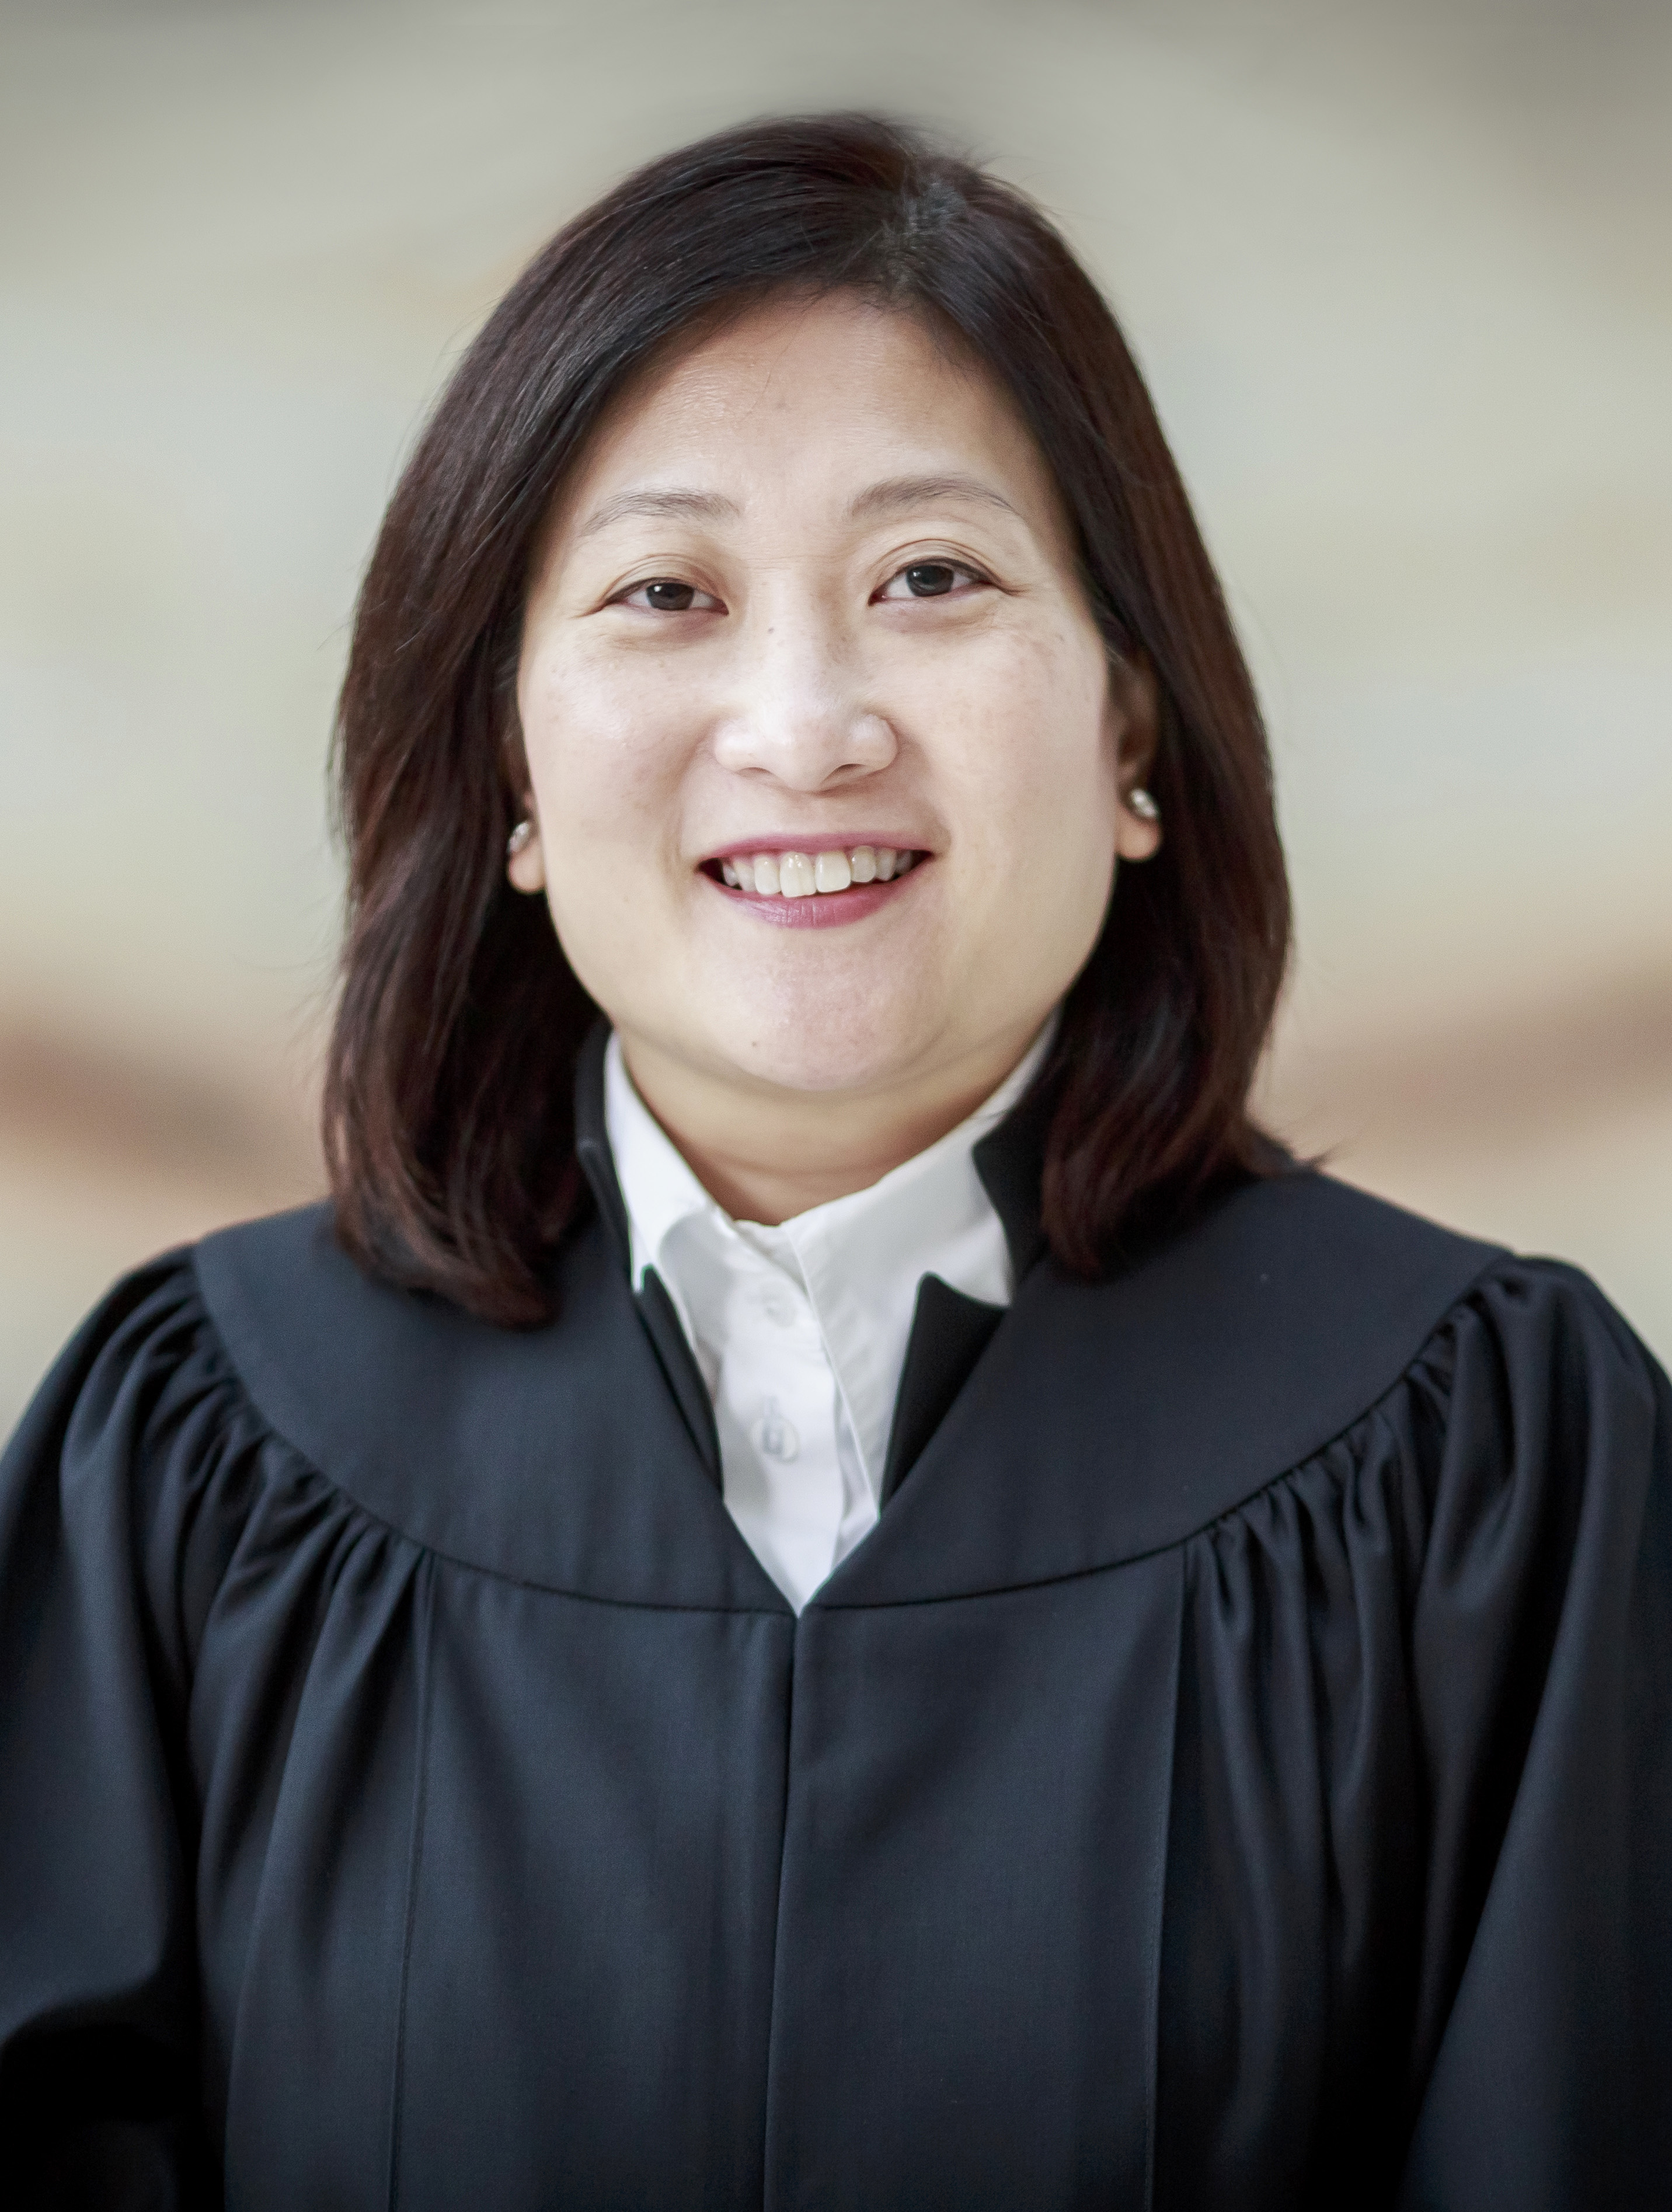 Portrait of Justice Valerie Thean, High Court Judge